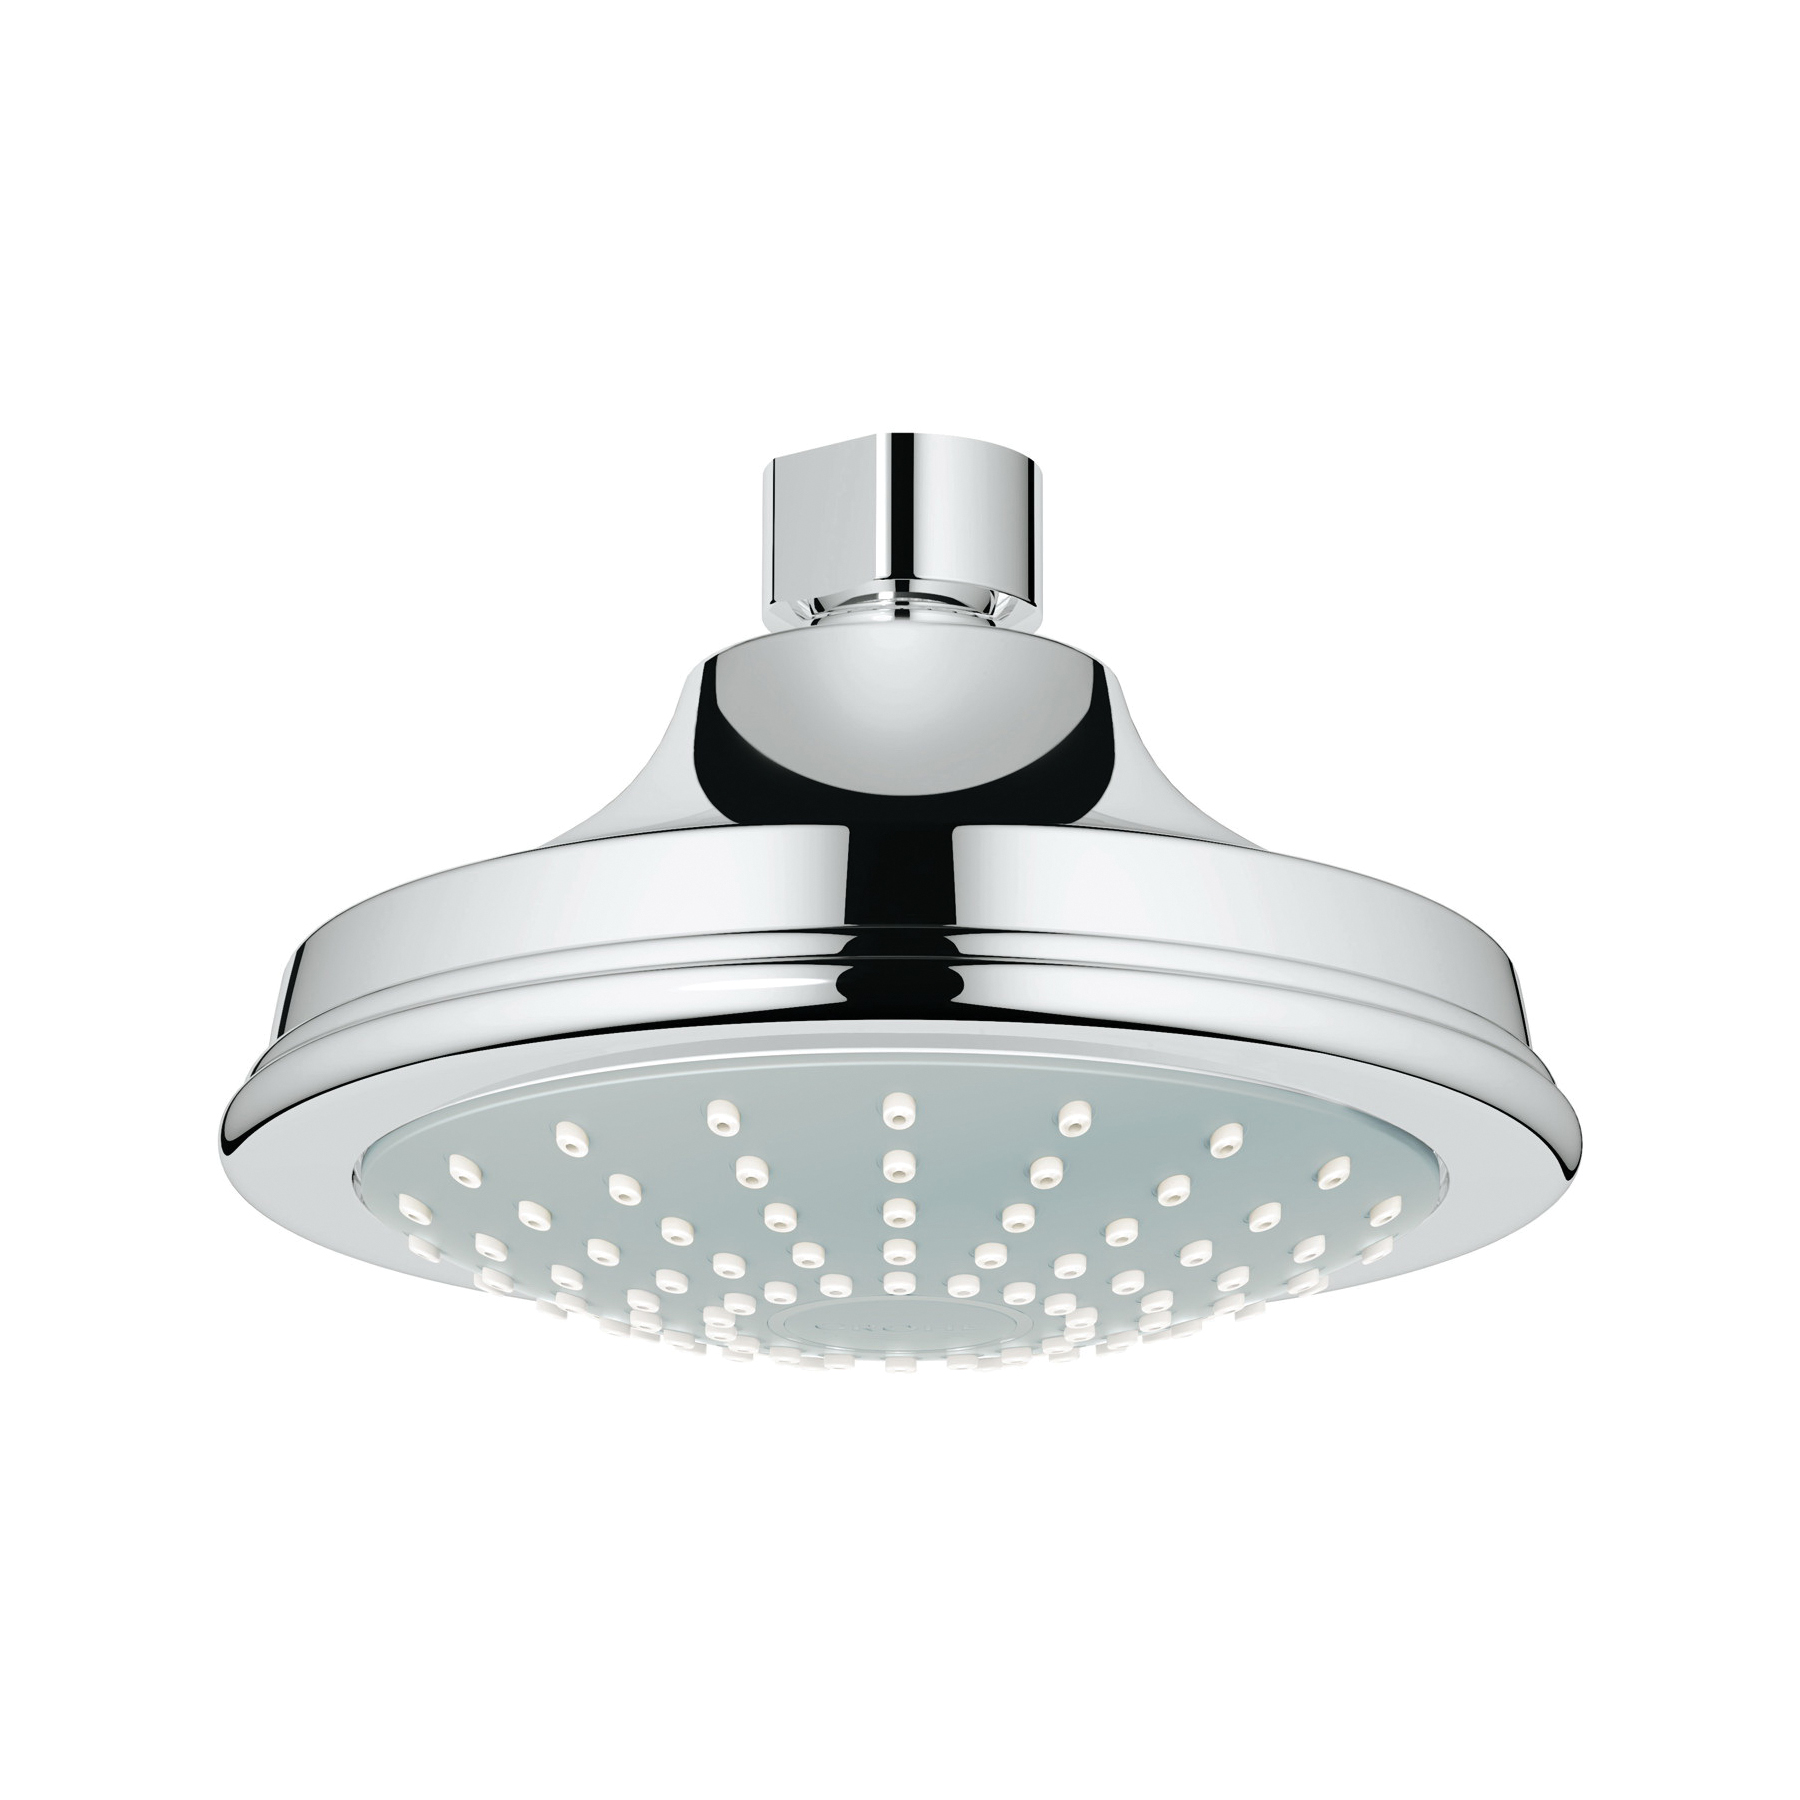 GROHE 27811000 Euphoria Rustic 130 Shower Head, 2 gpm, 1 Spray, Wall Mount, 5.06 in Head, Import